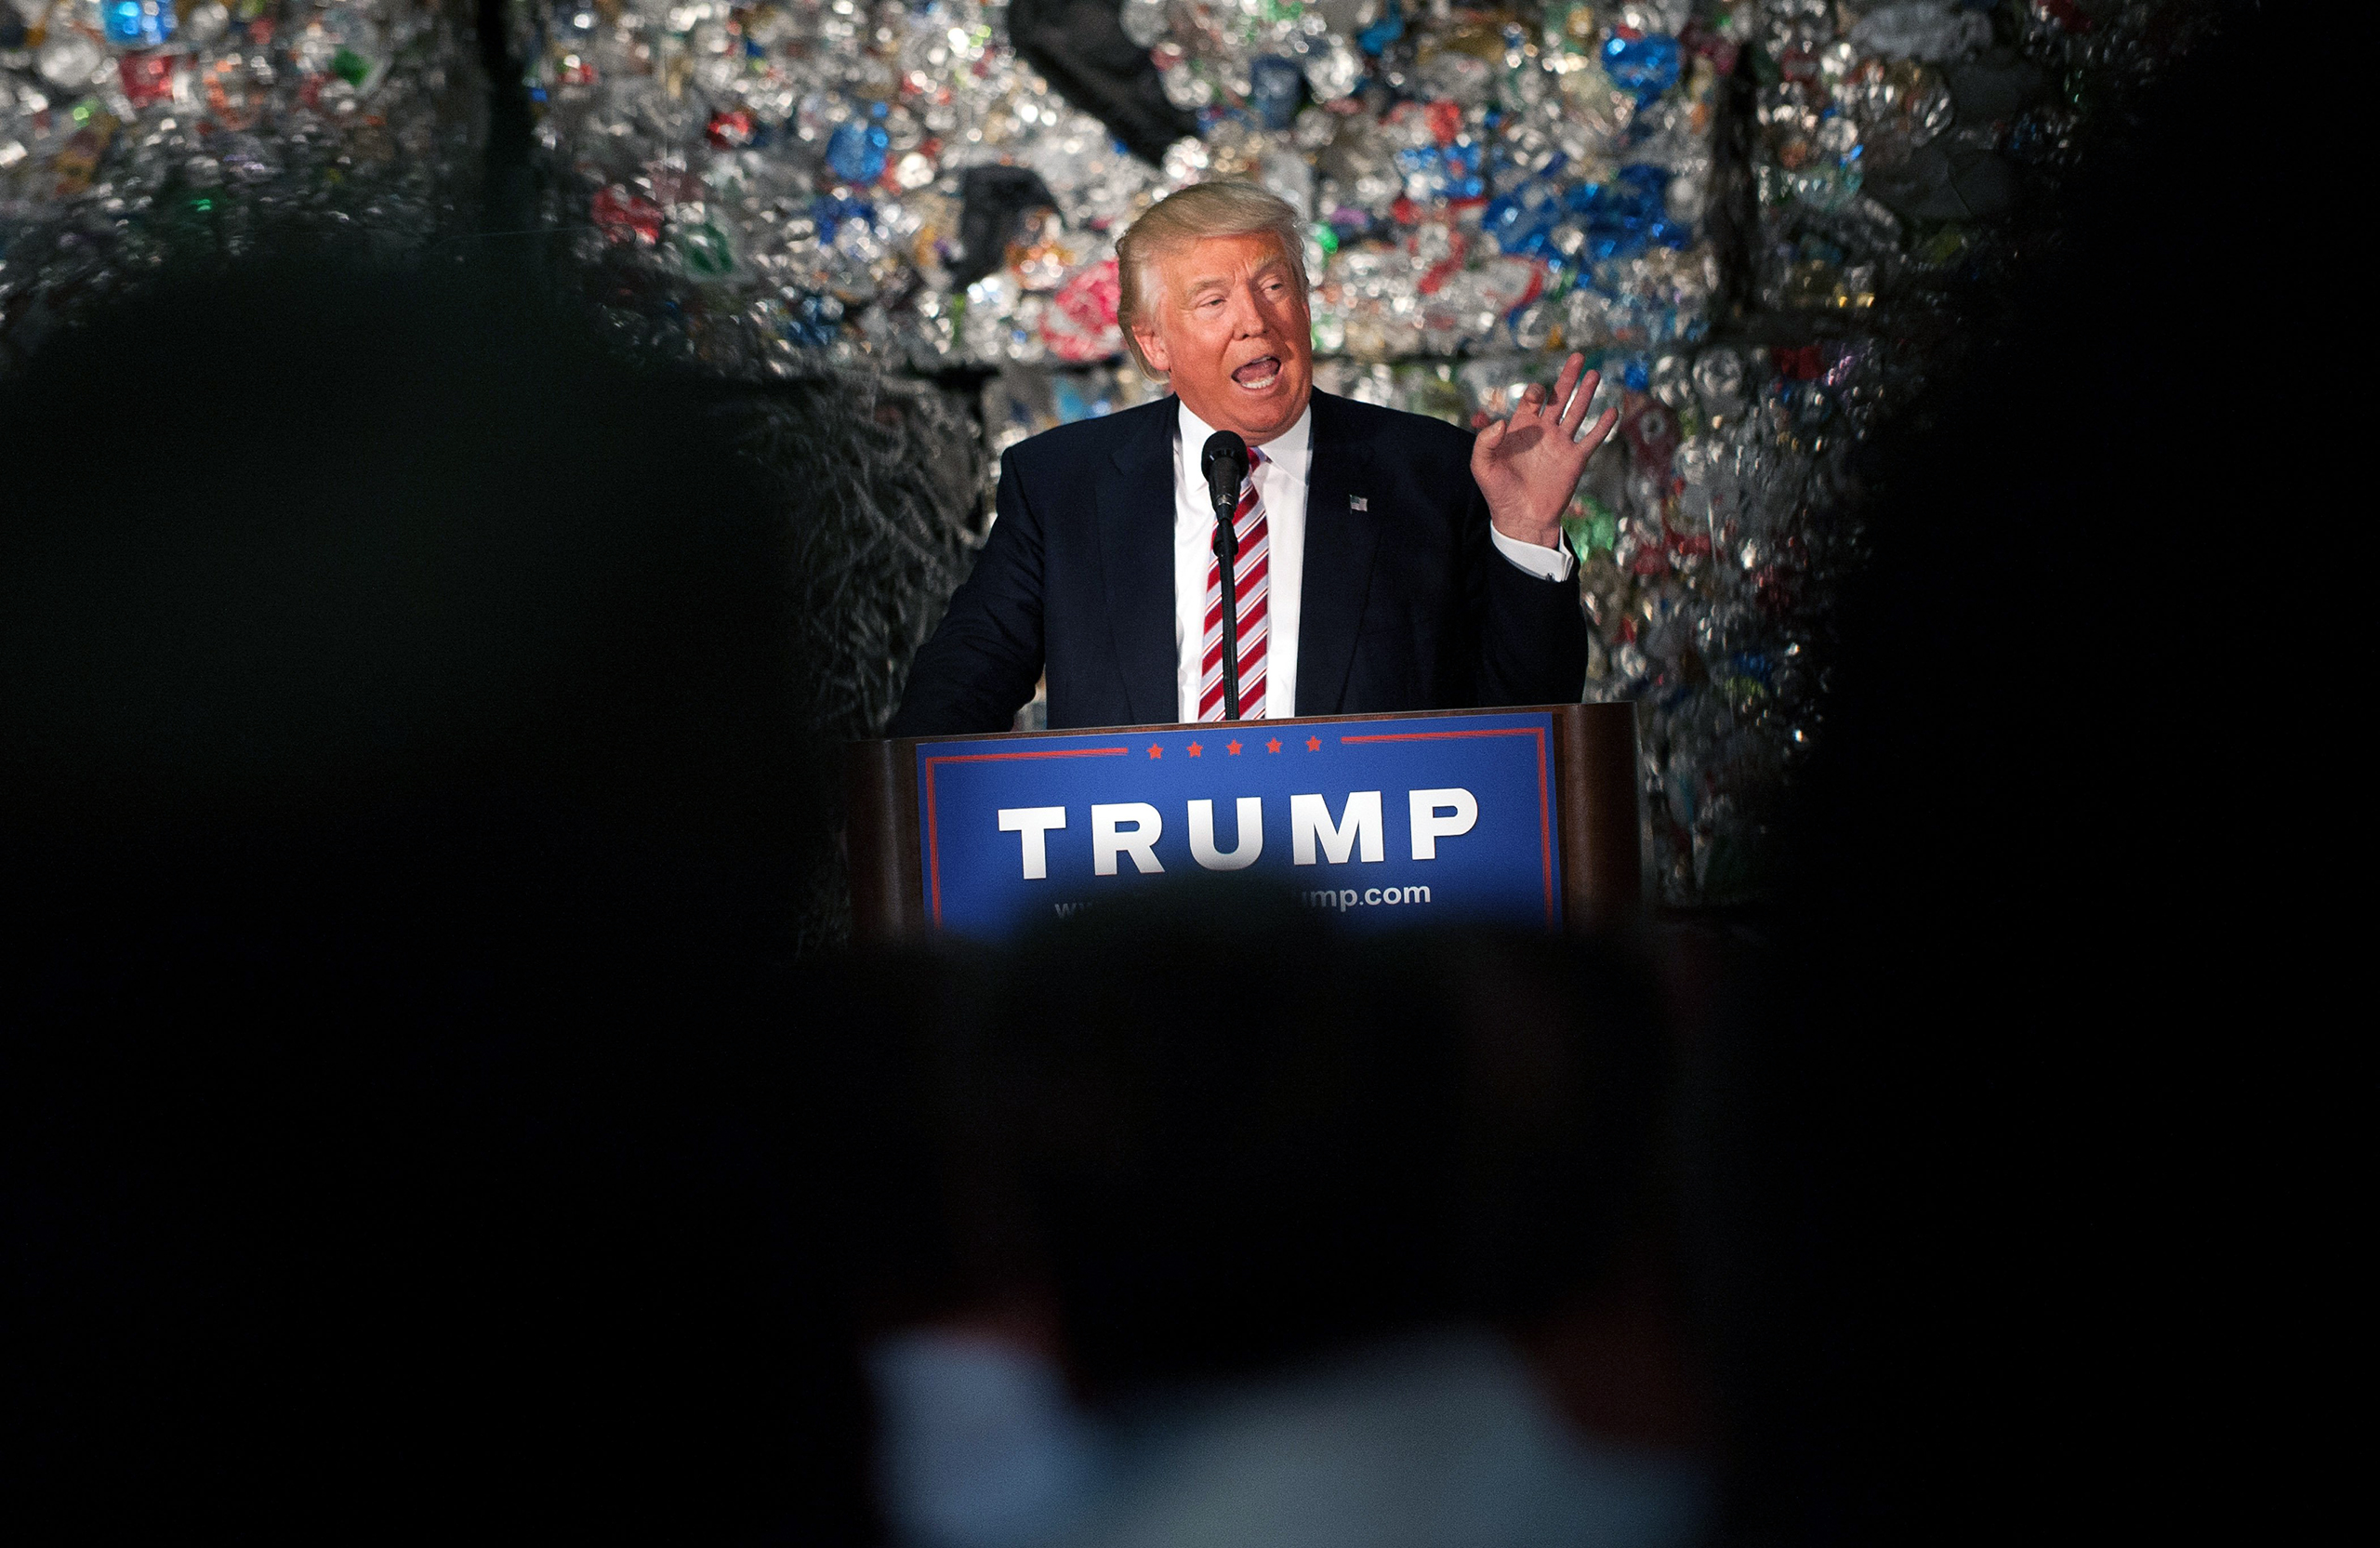 Presumptive GOP presidential nominee Donald Trump speaks during a policy speech at Alumisource in Monessen, Pa., on June 28, 2016.